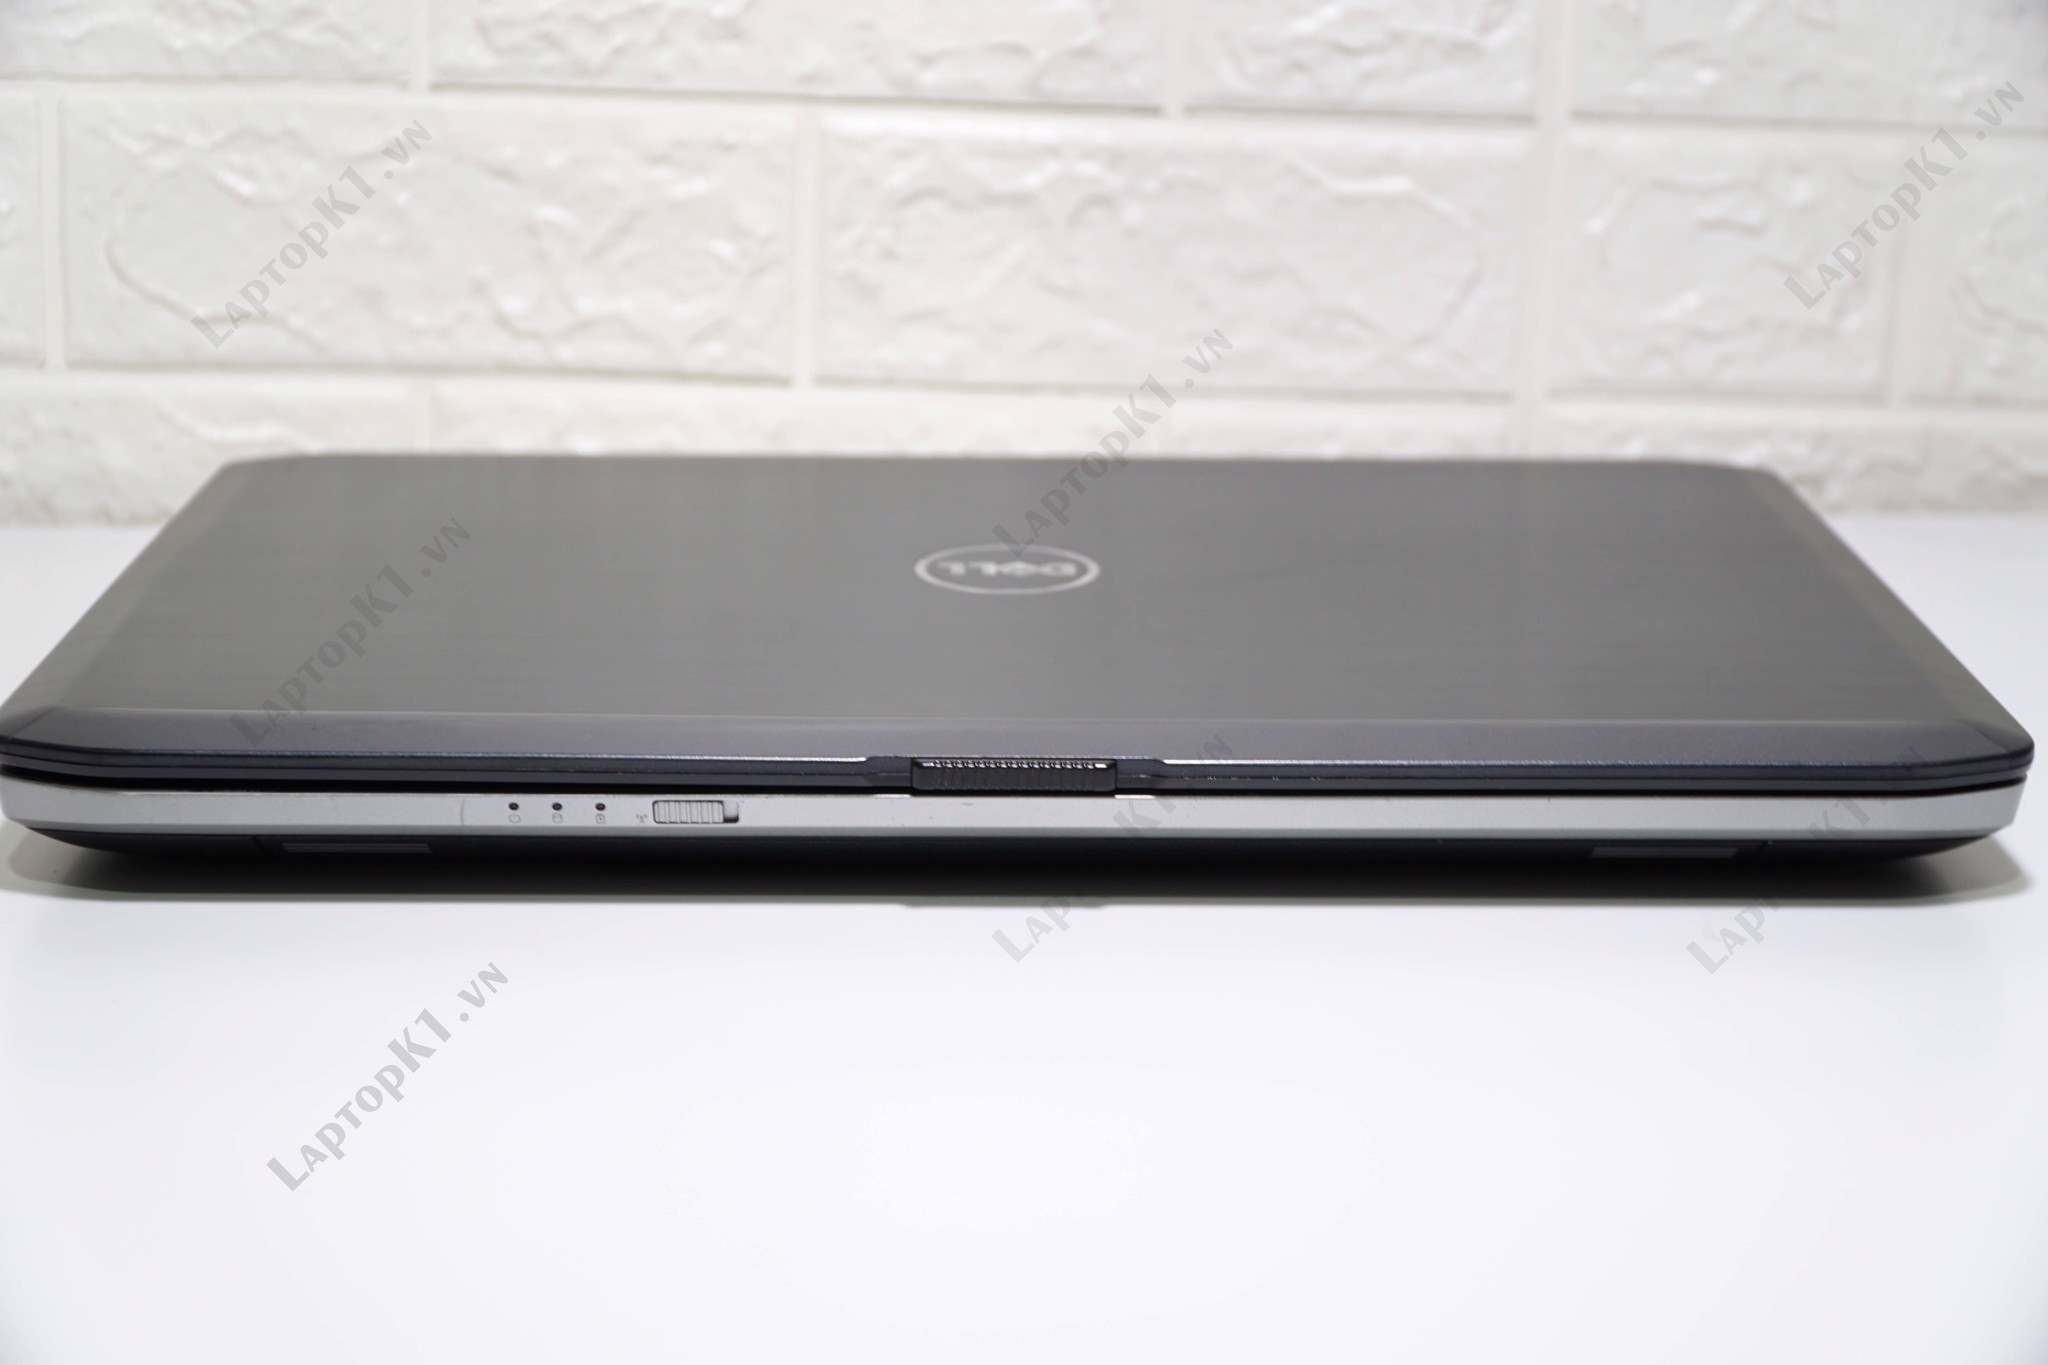 Laptop Dell Latitude E5520 (Core i5 2520M, RAM 4GB, HDD 250GB, Intel HD Graphics 3000, 15.6 inch)